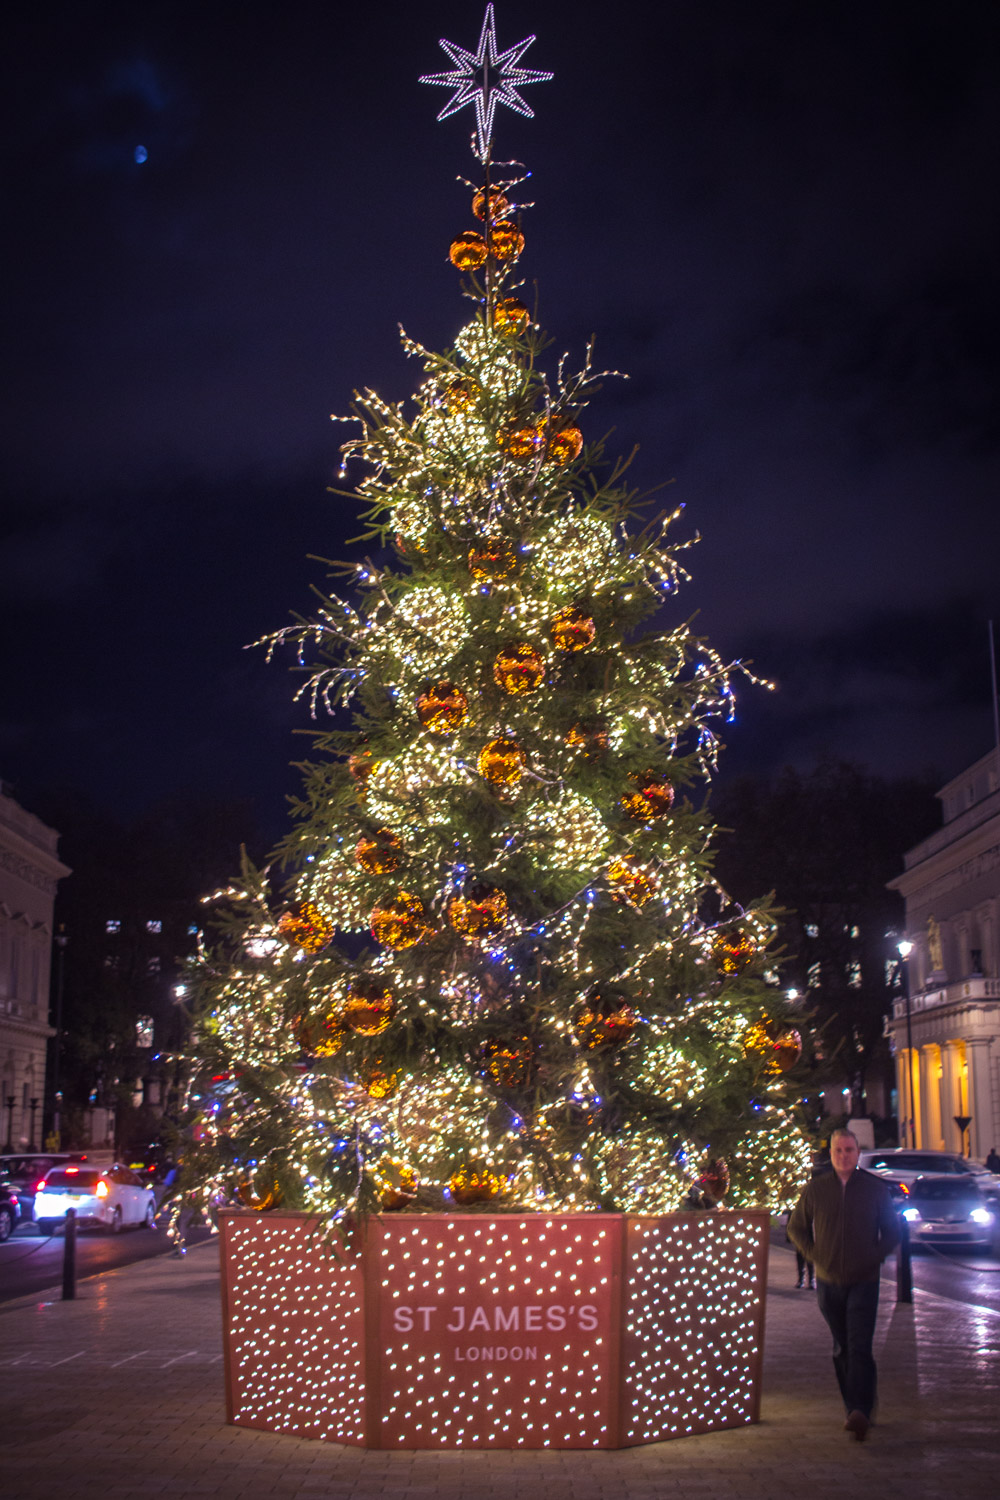 Christmas tree in St. James's London